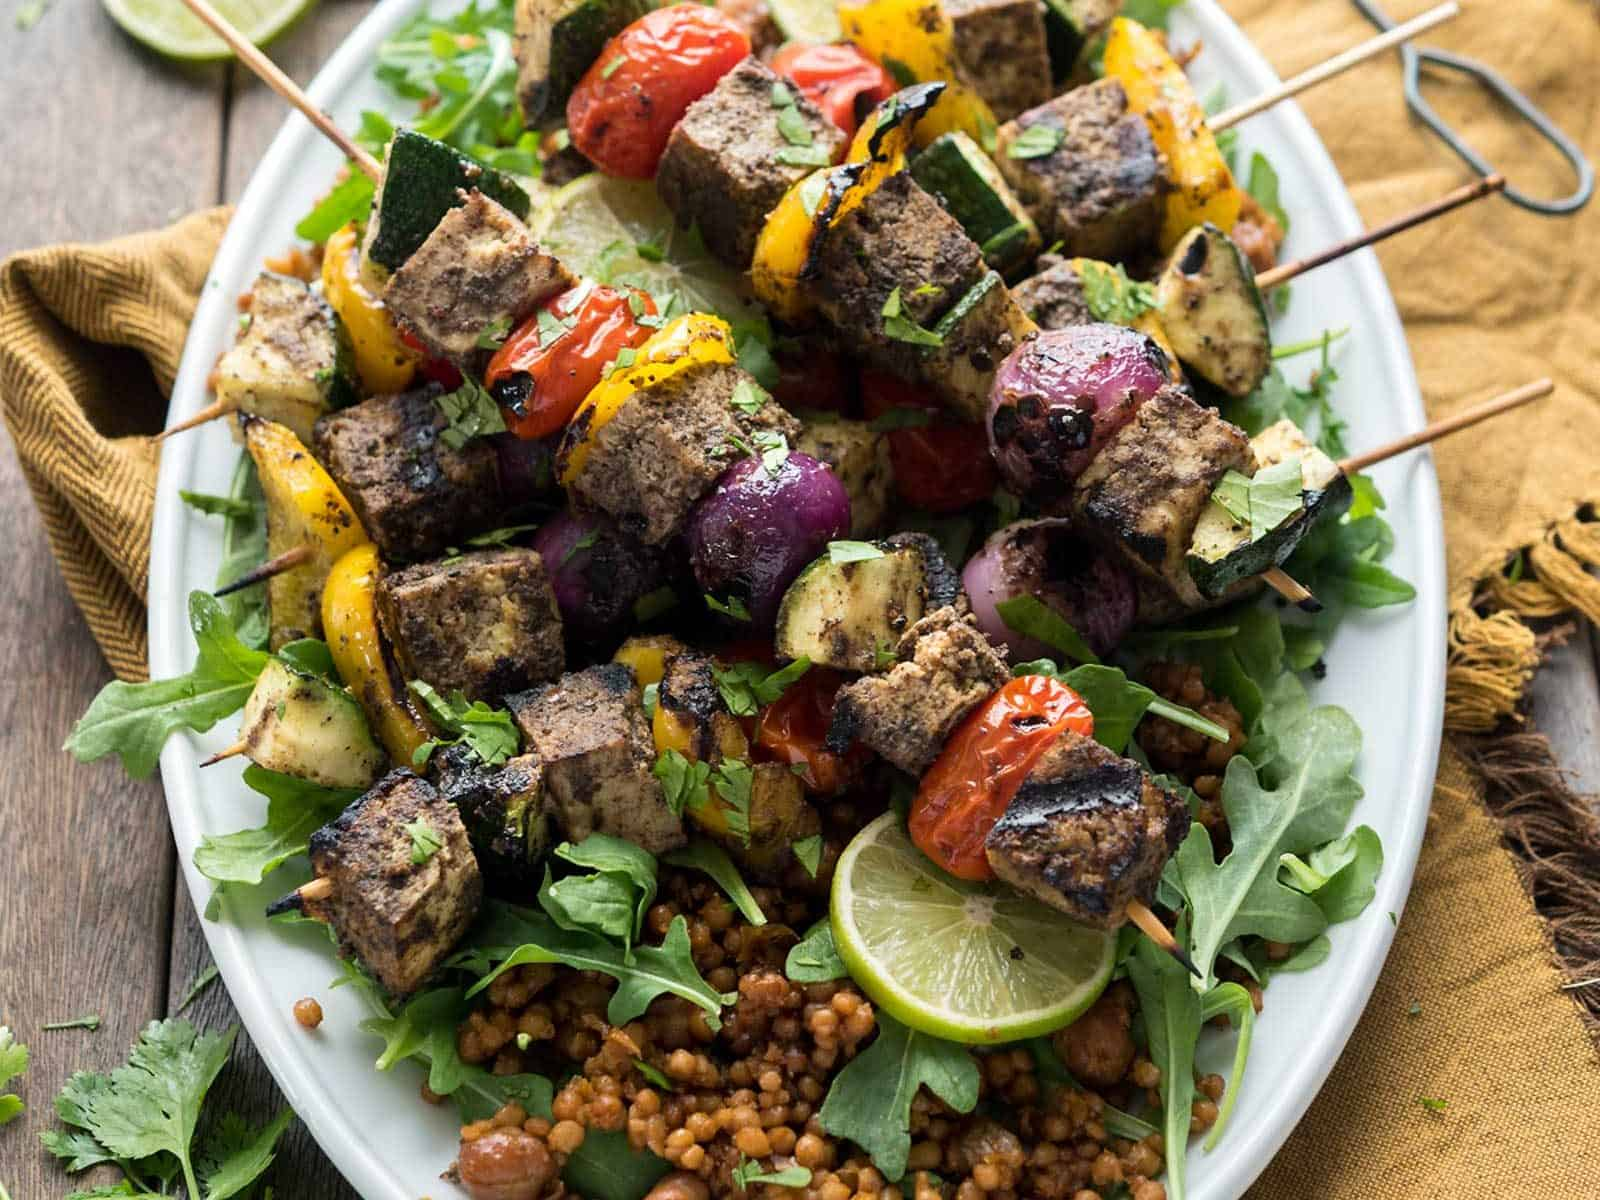 Grilled Tofu Shawarma Skewers! Perfect for Summer grilling, easy-to-make with Wild Garden's marinade. Vegan, Gluten-free #veganyackattack